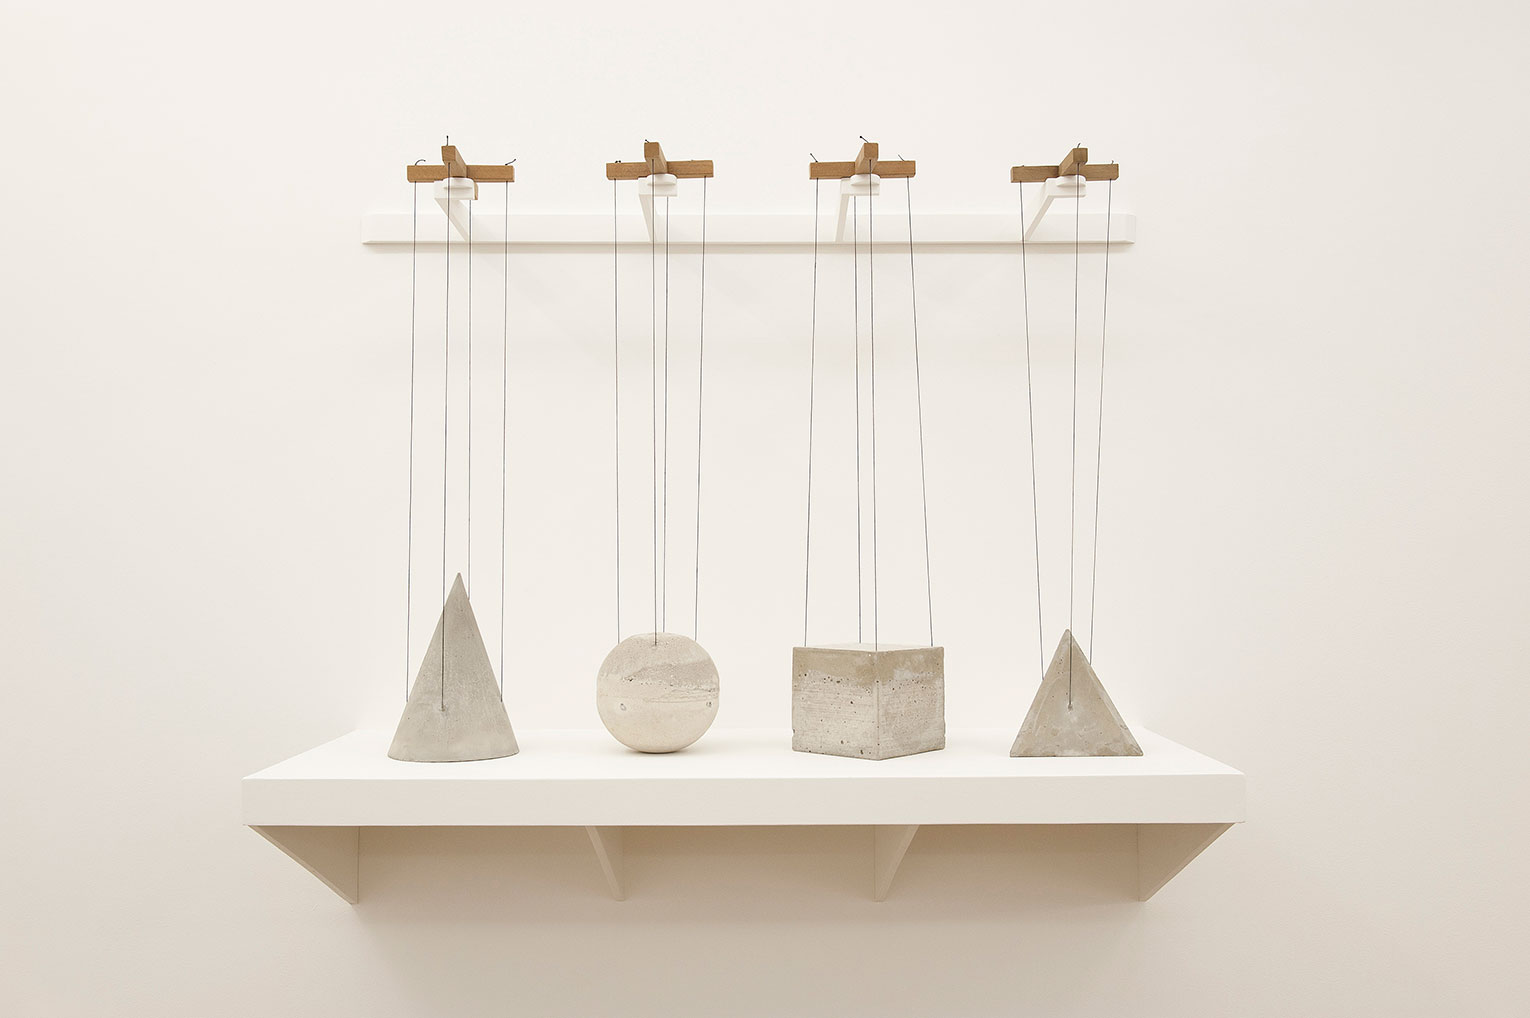 <b>Title:&nbsp;</b>Divining Rods<br /><b>Year:&nbsp;</b>2010<br /><b>Medium:&nbsp;</b>Concrete, string and wood<br /><b>Size:&nbsp;</b>85 x 122 x 46 cm